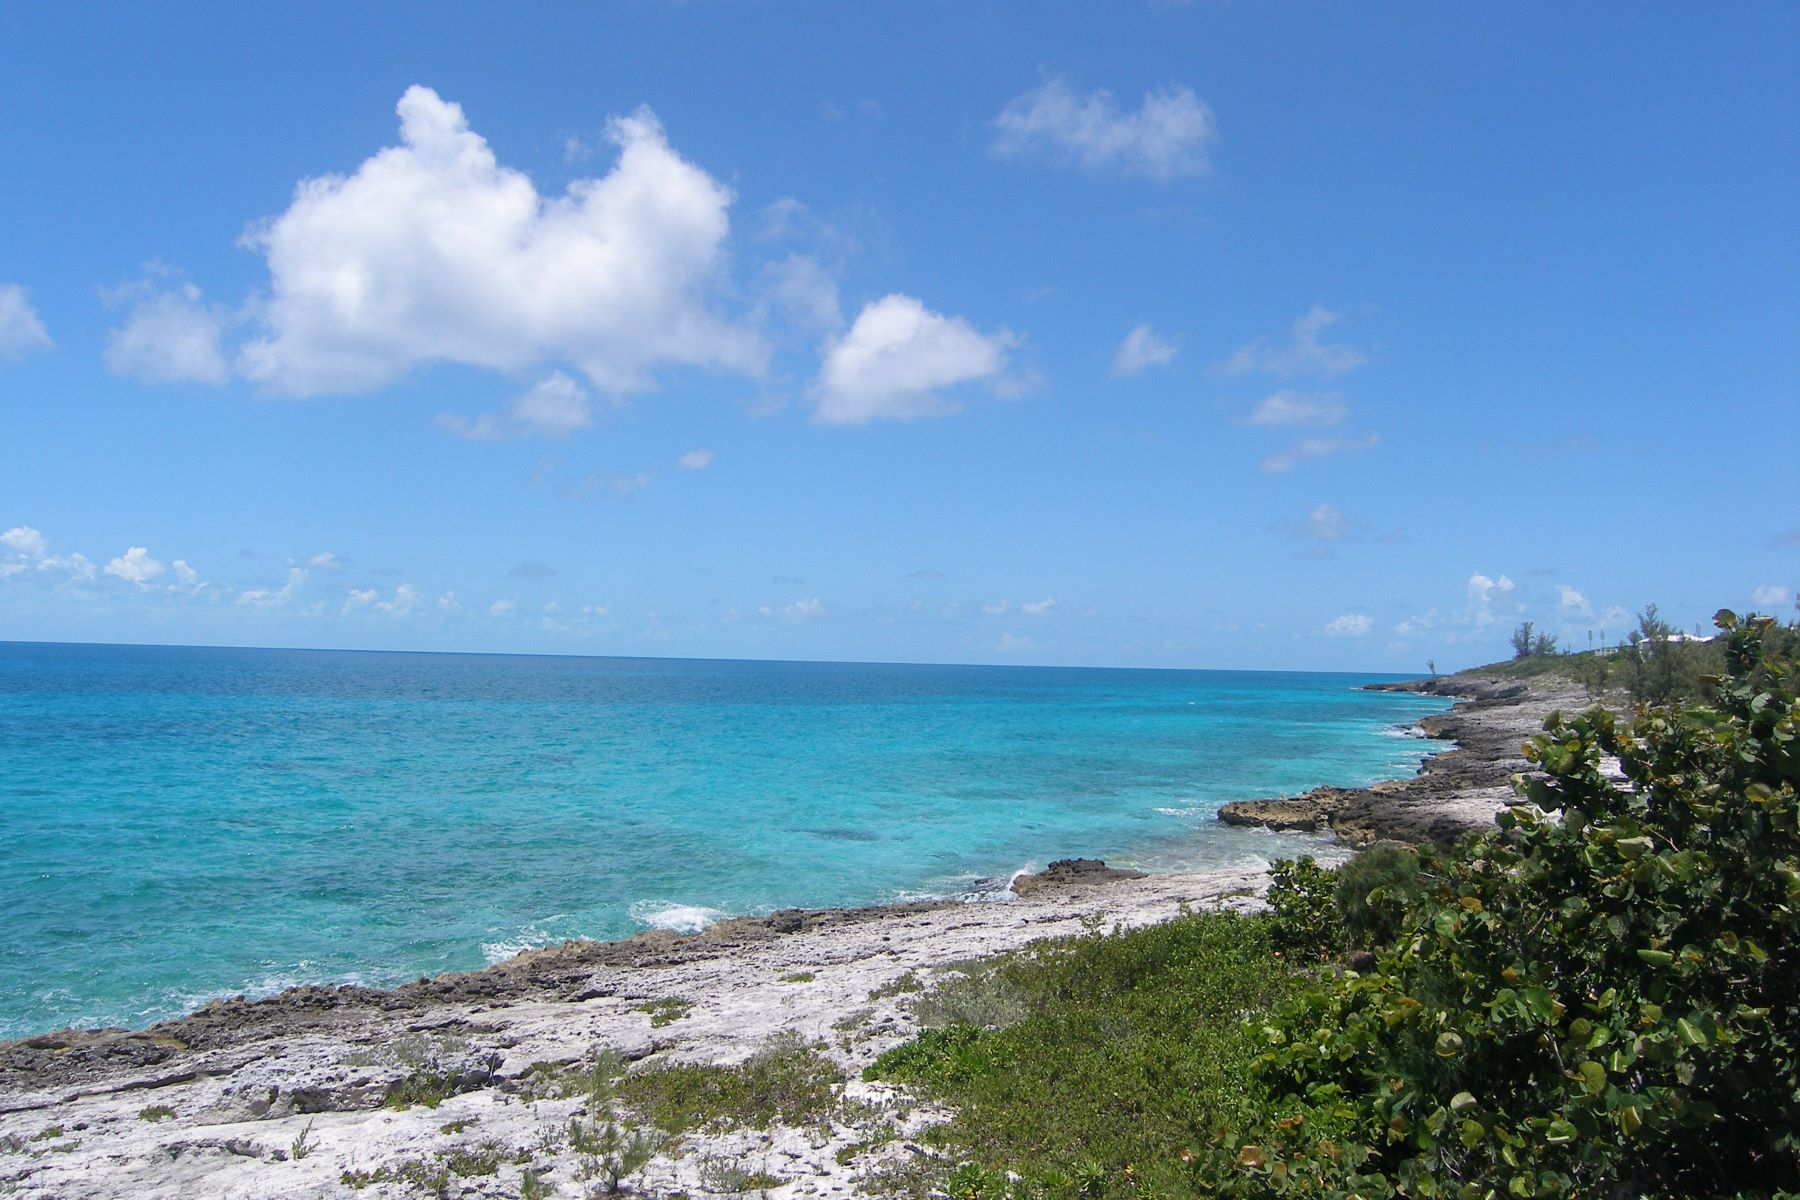 Land for Sale at Rainbow Bay Lot #34, Eleuthera Rainbow Bay, Eleuthera Bahamas